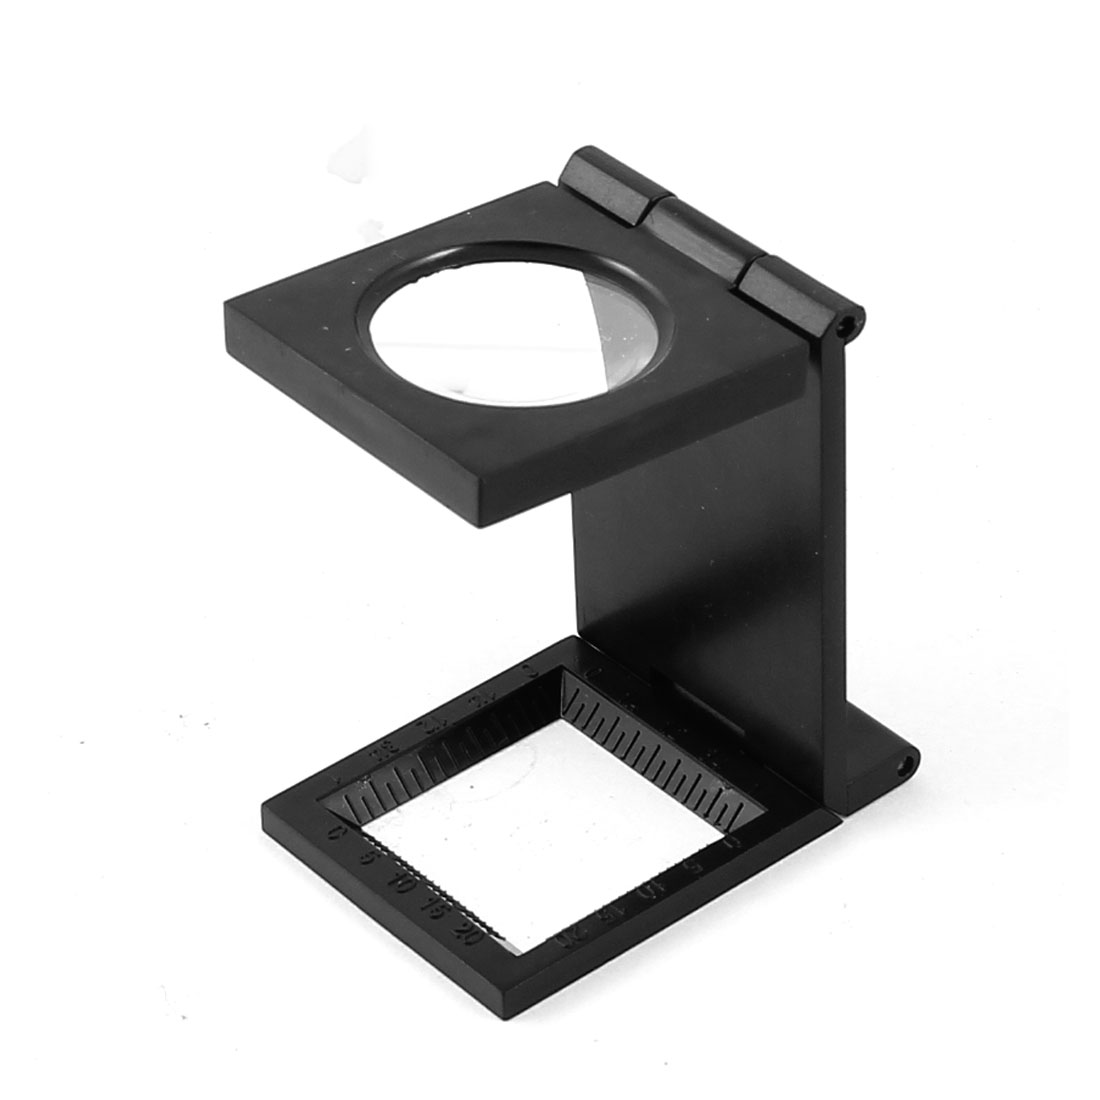 Portable Round 26mm Dia Lens Foldable Plastic Frame Handheld Magnifier Magnifying Glass Black